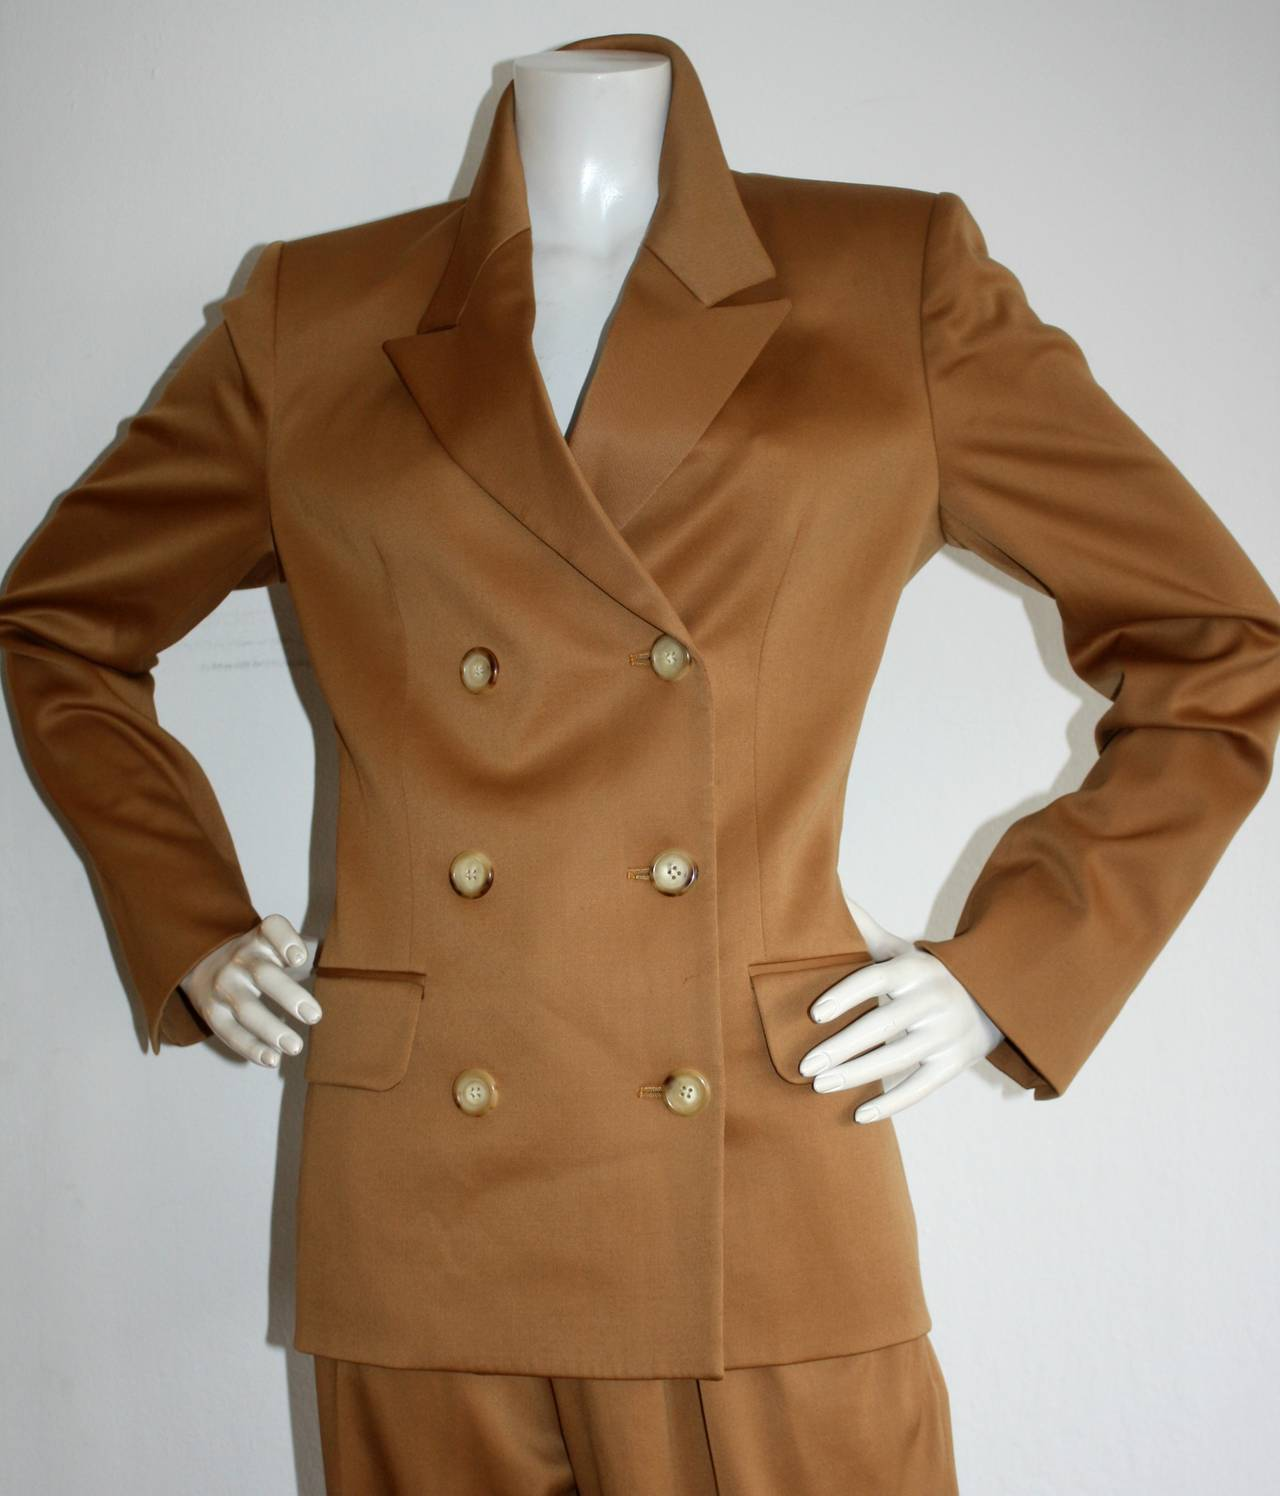 Iconic Vintage Yves Saint Laurent Le Smoking Suit Double Breasted Chic 3